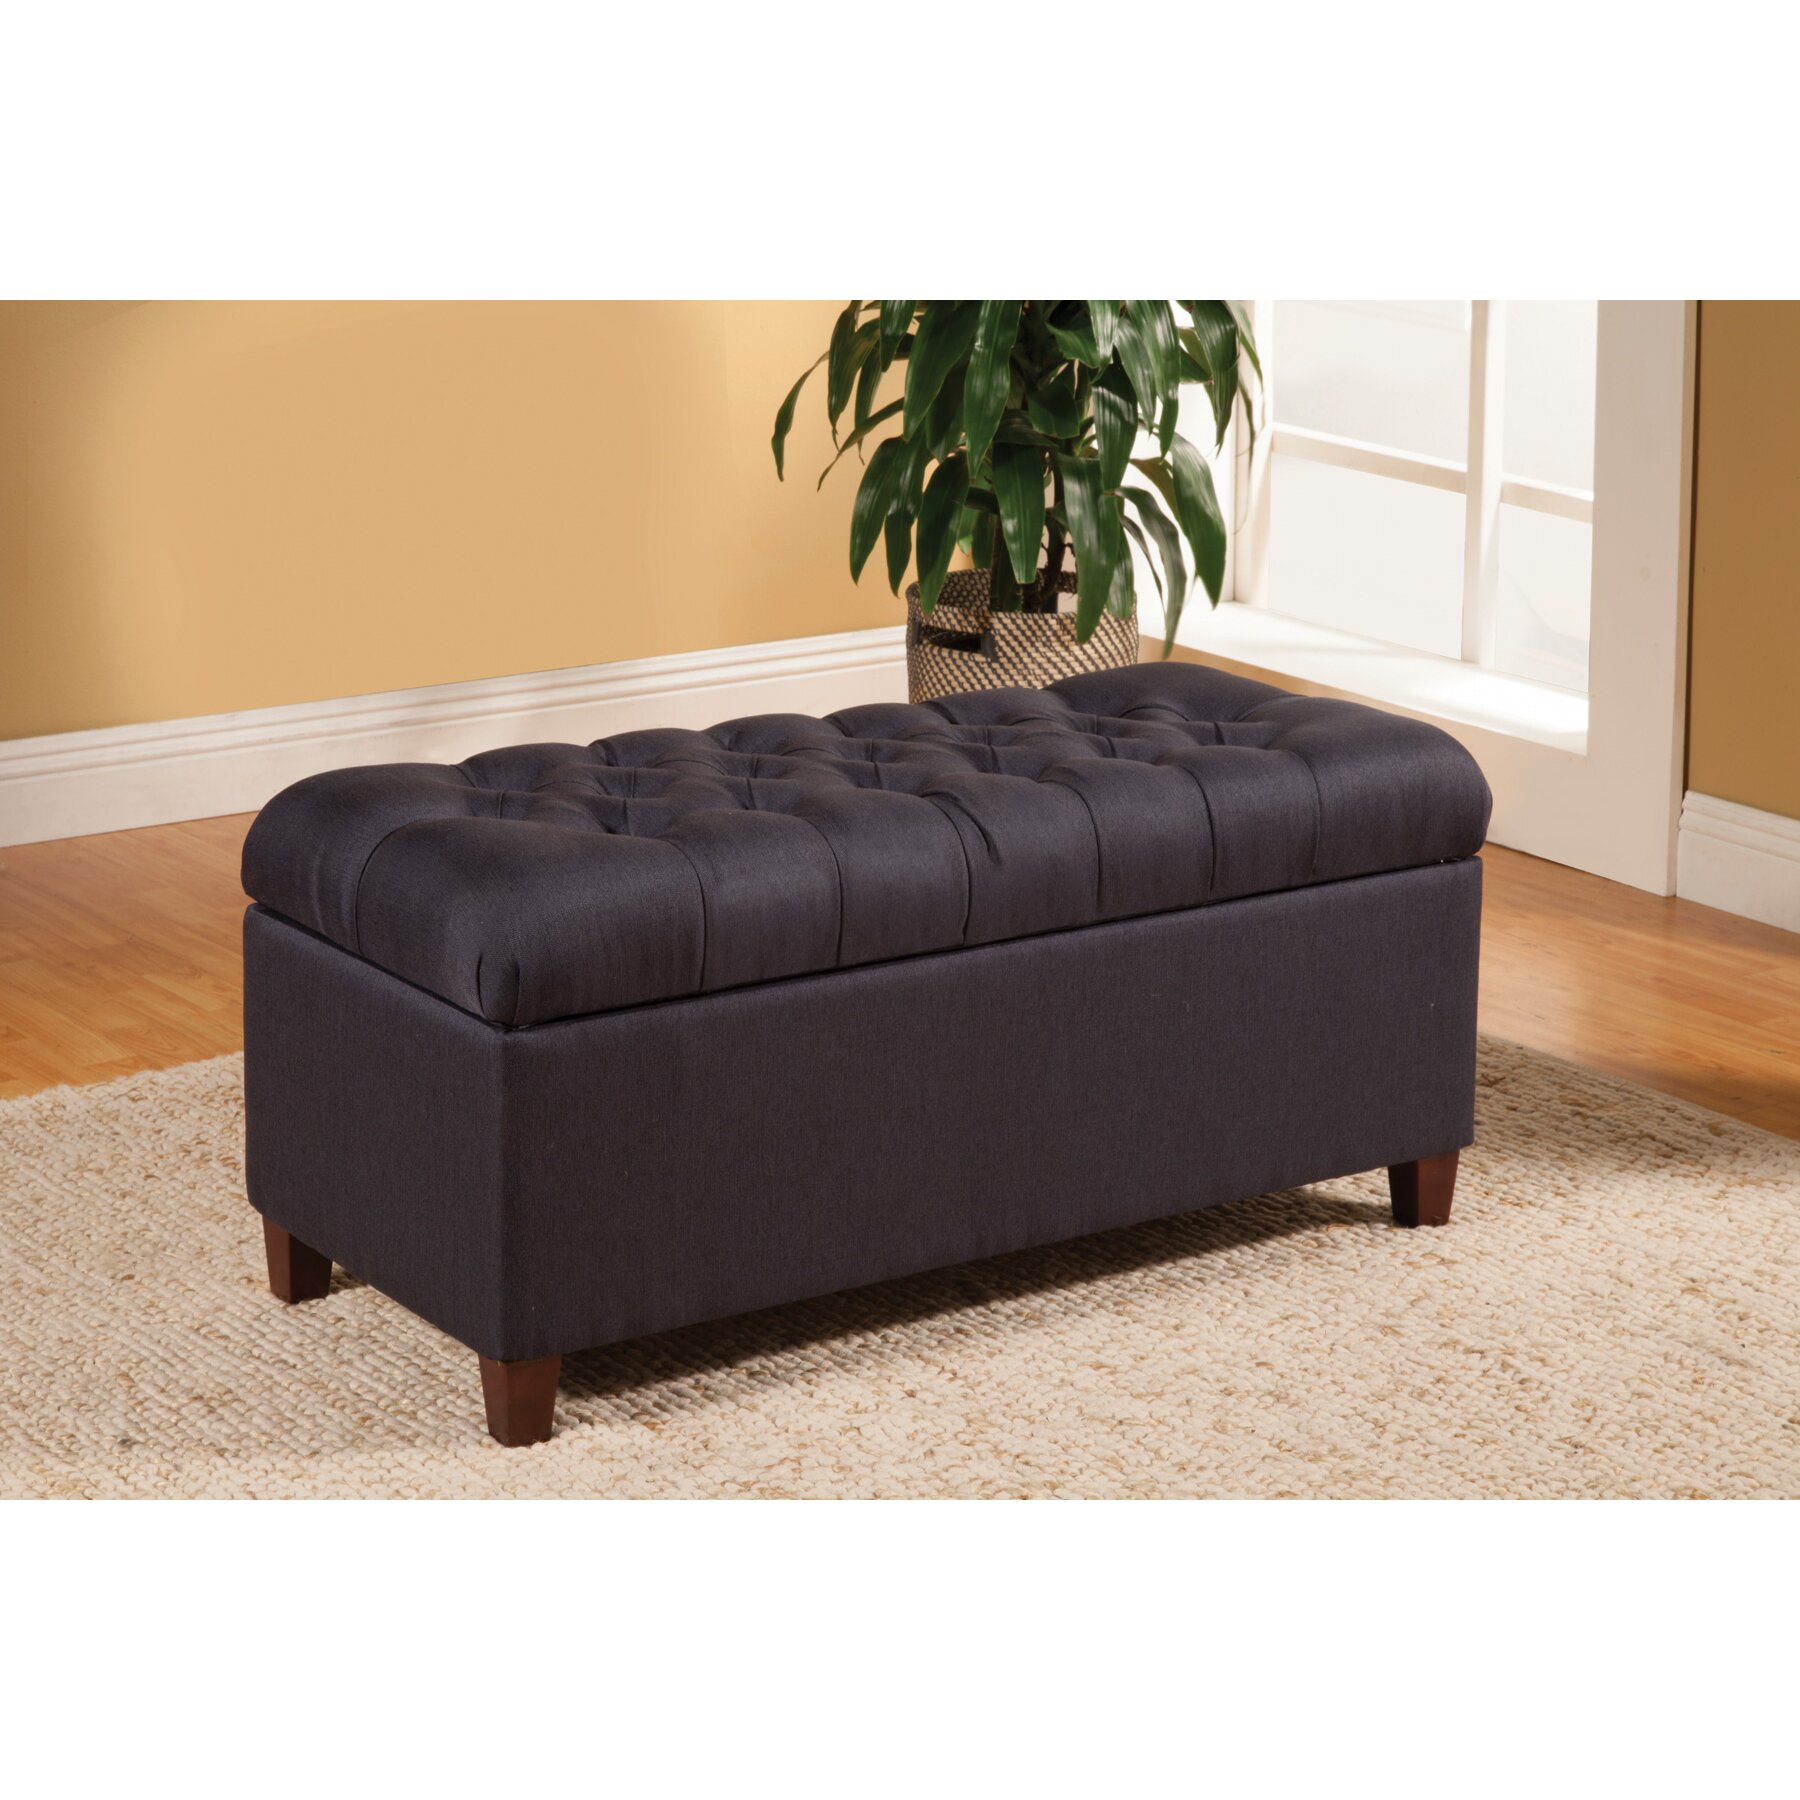 Alcott Hill Henderson Upholstered Storage Bedroom Bench Reviews Wayfair